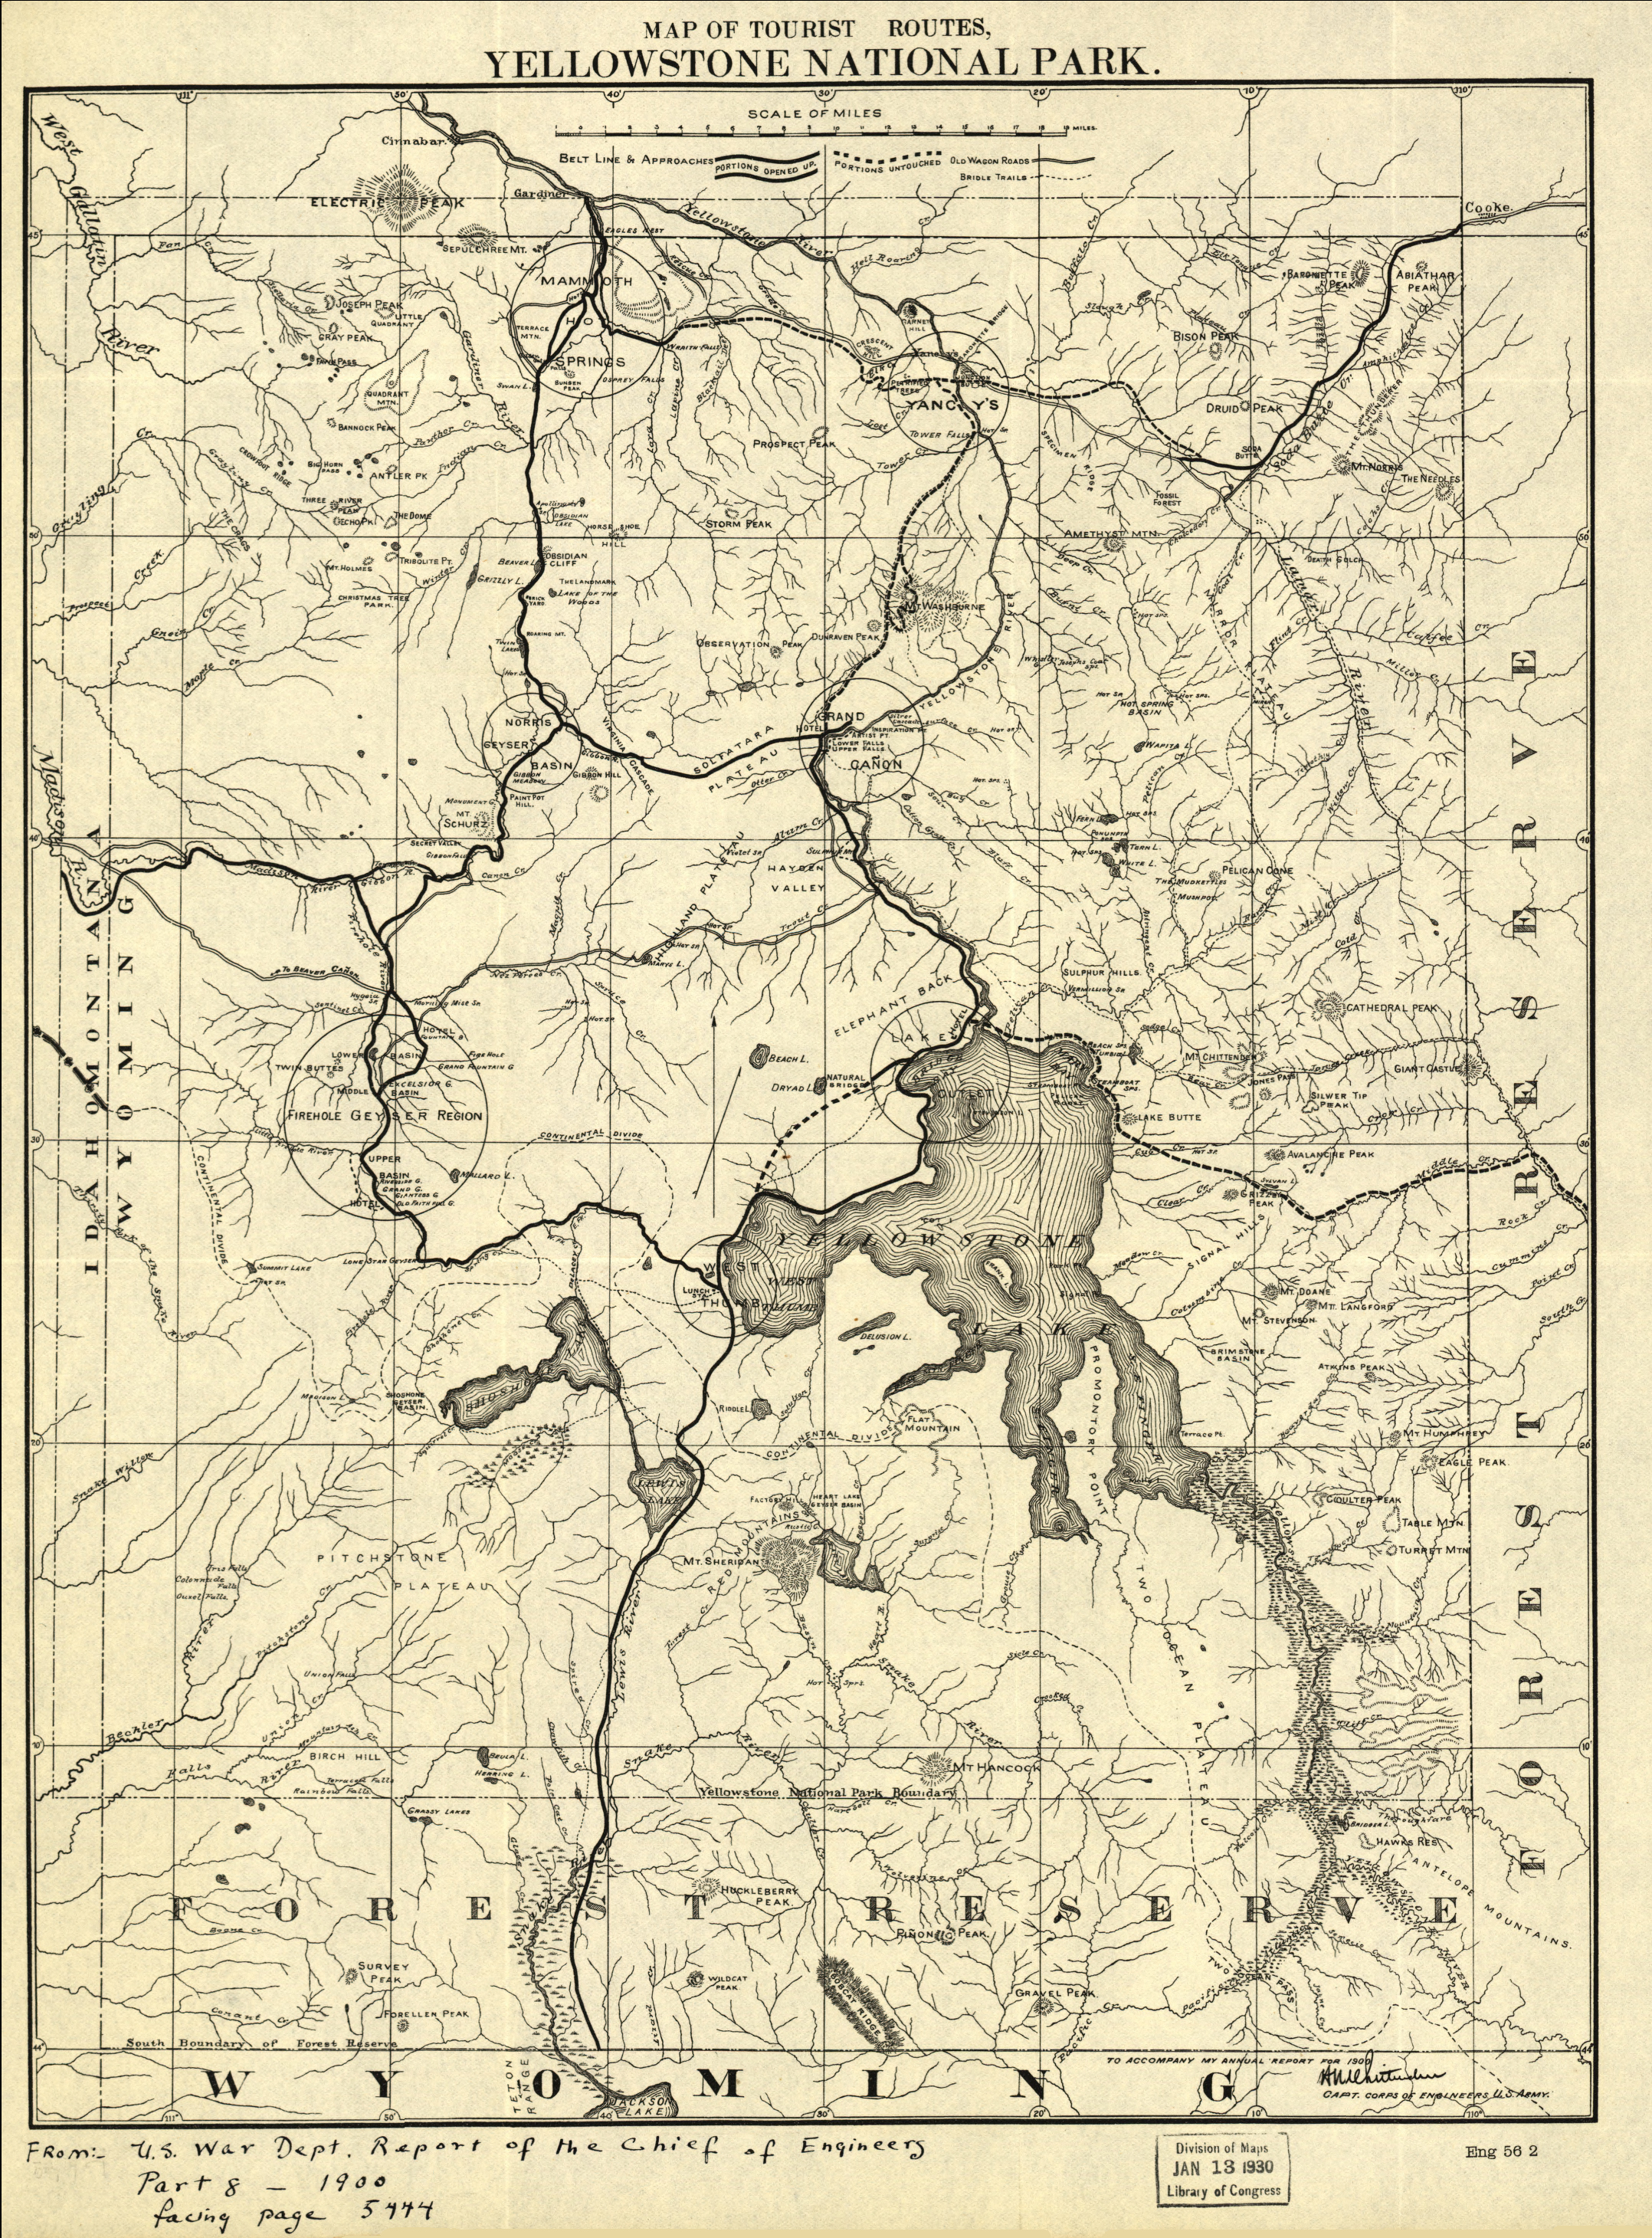 Yellowstone National Park 1900 Tourist Map from the Library of Congress Collection